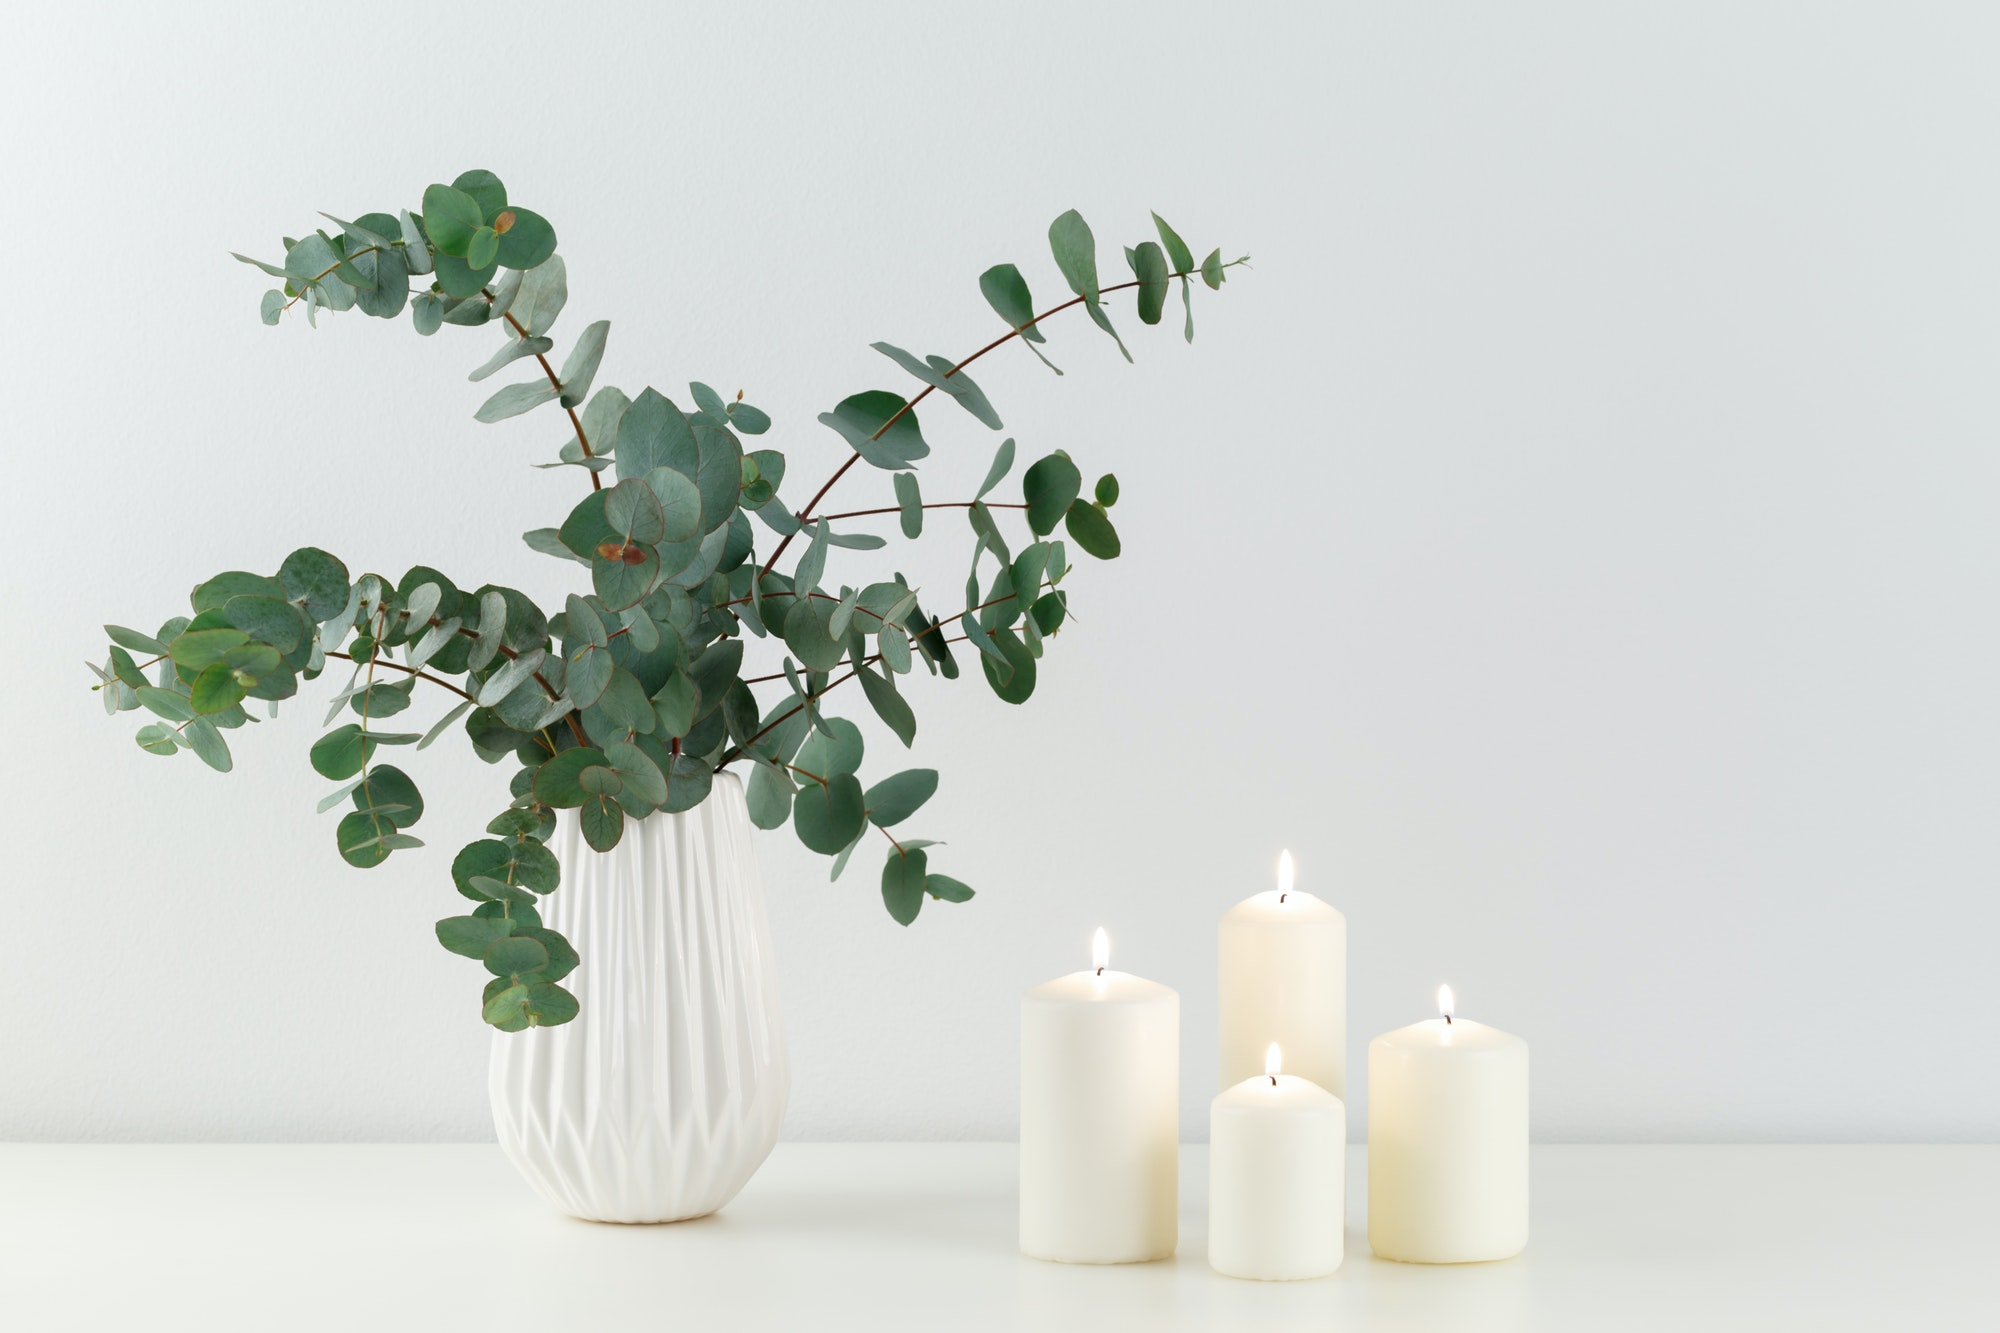 Bouquet of eucalyptus and candles